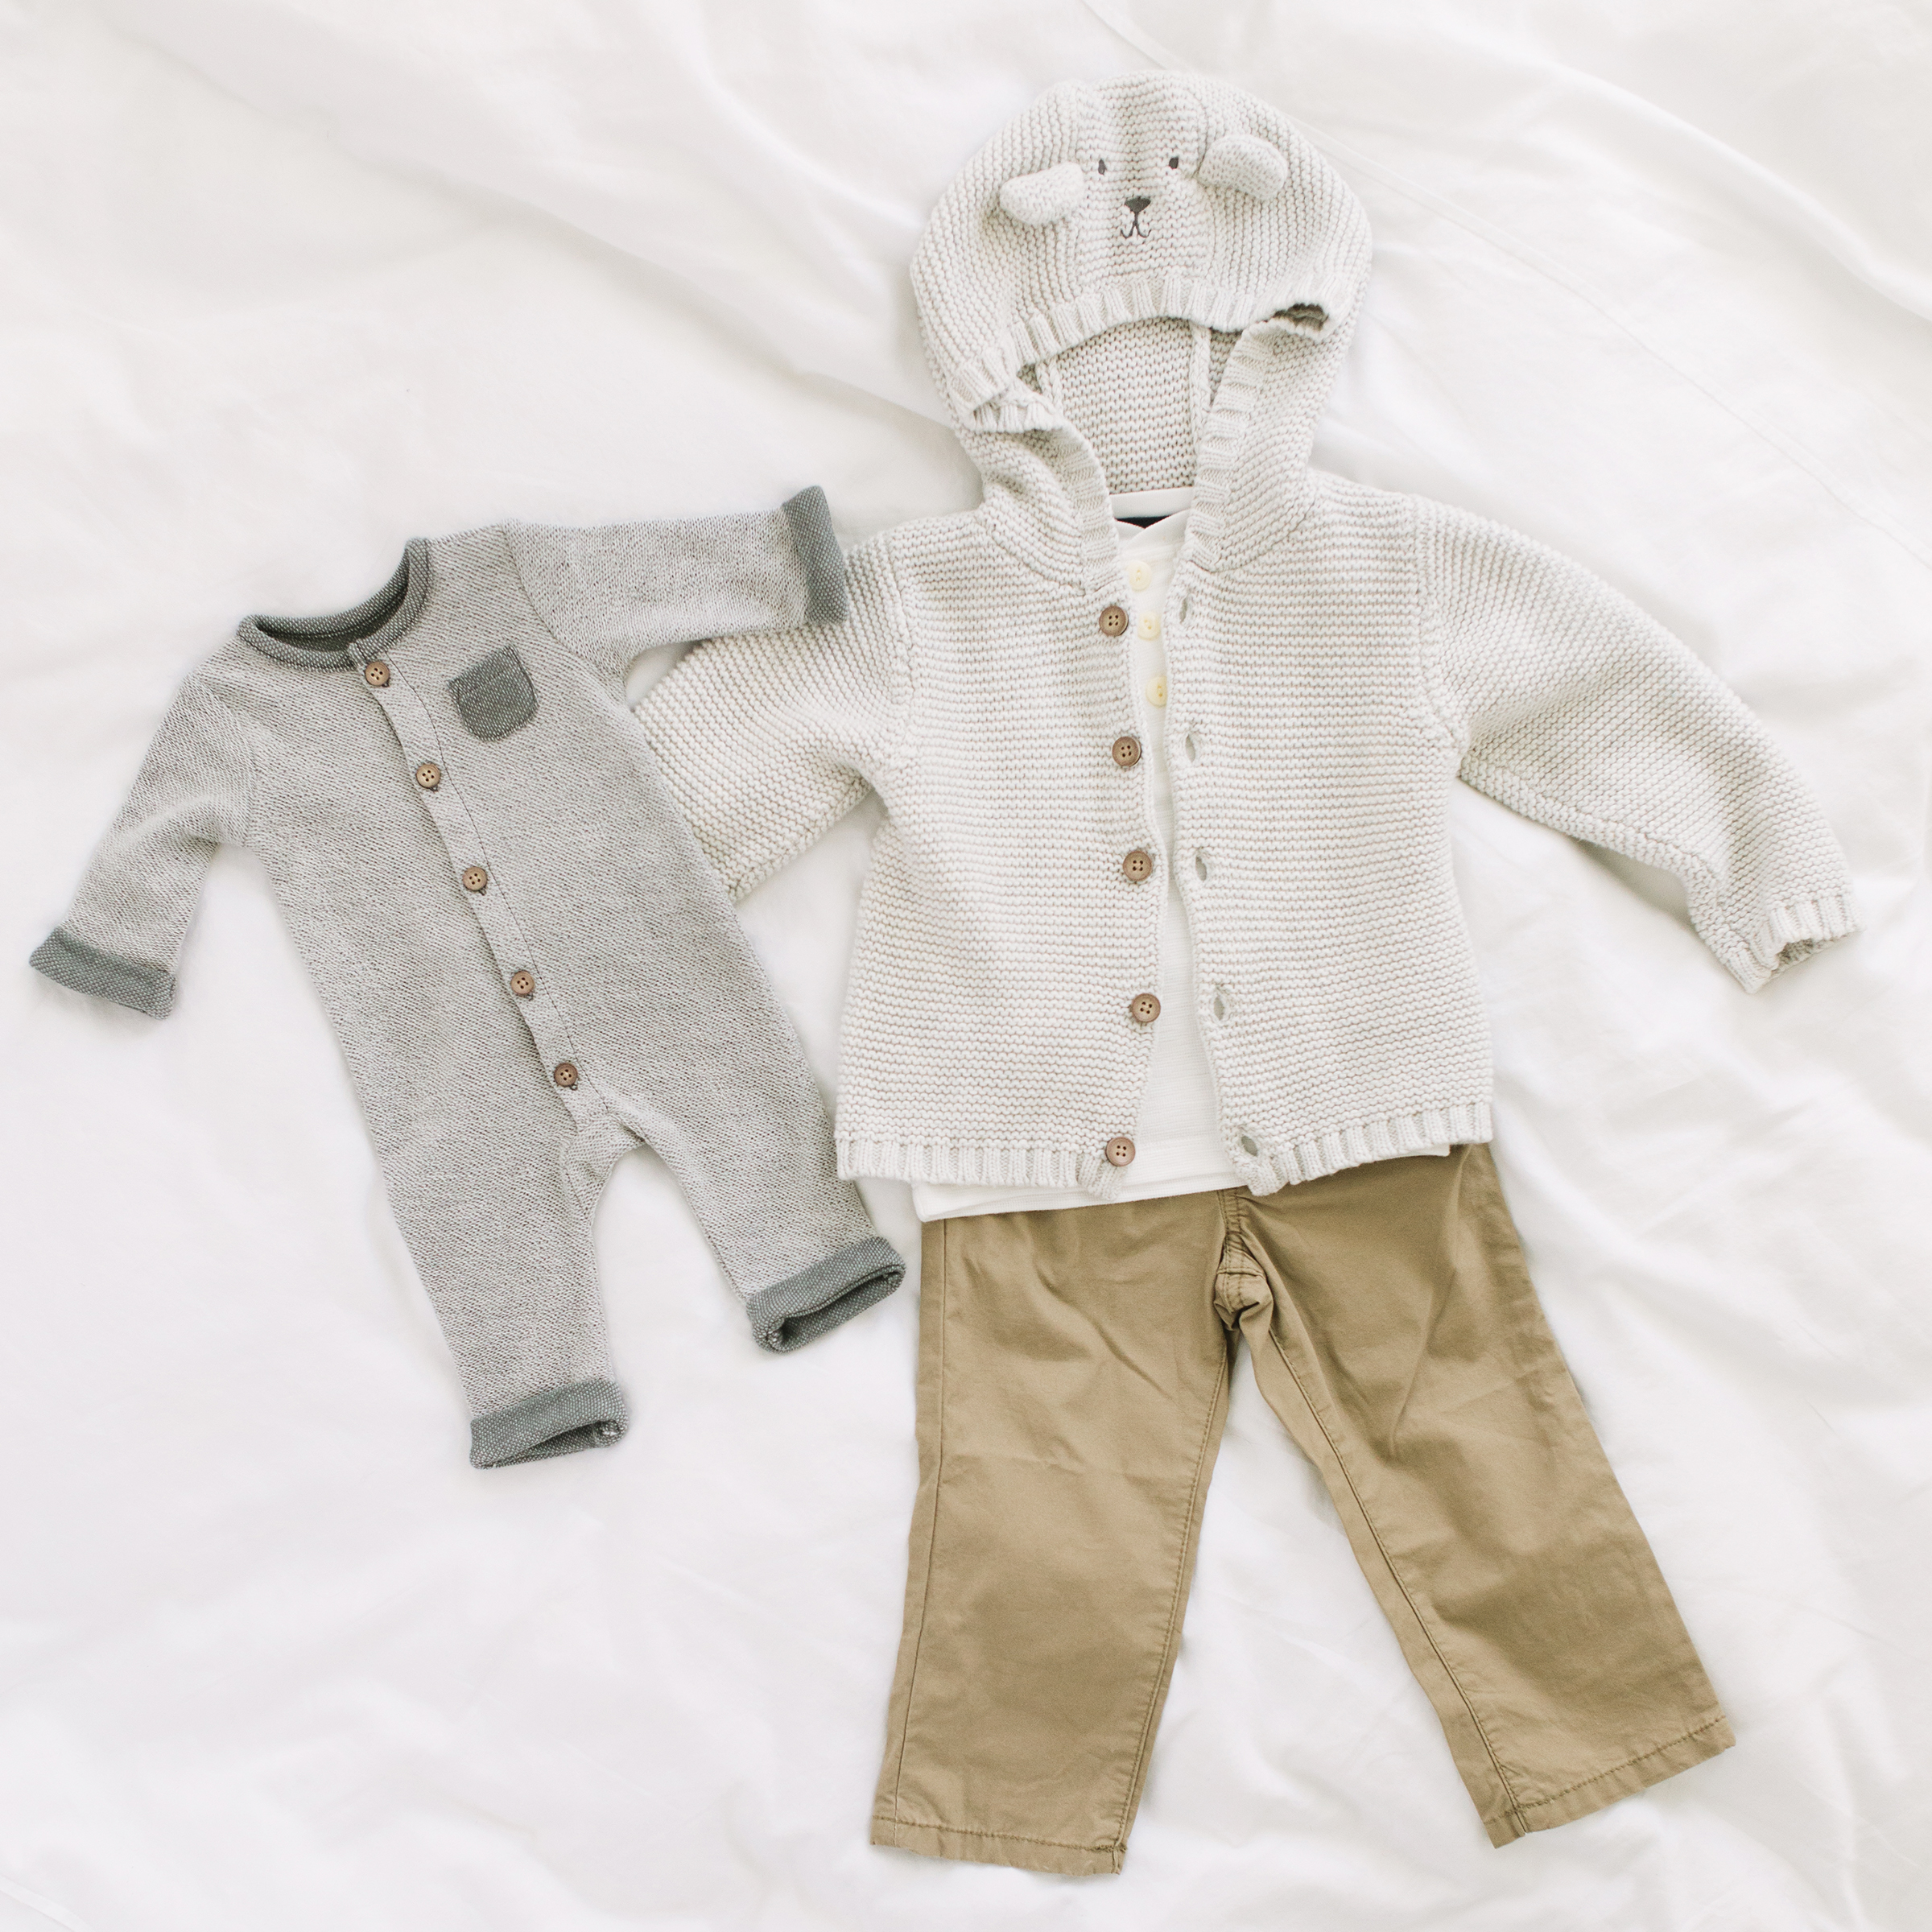 Sibling coordinating fall outfits by Carters from JCPenny